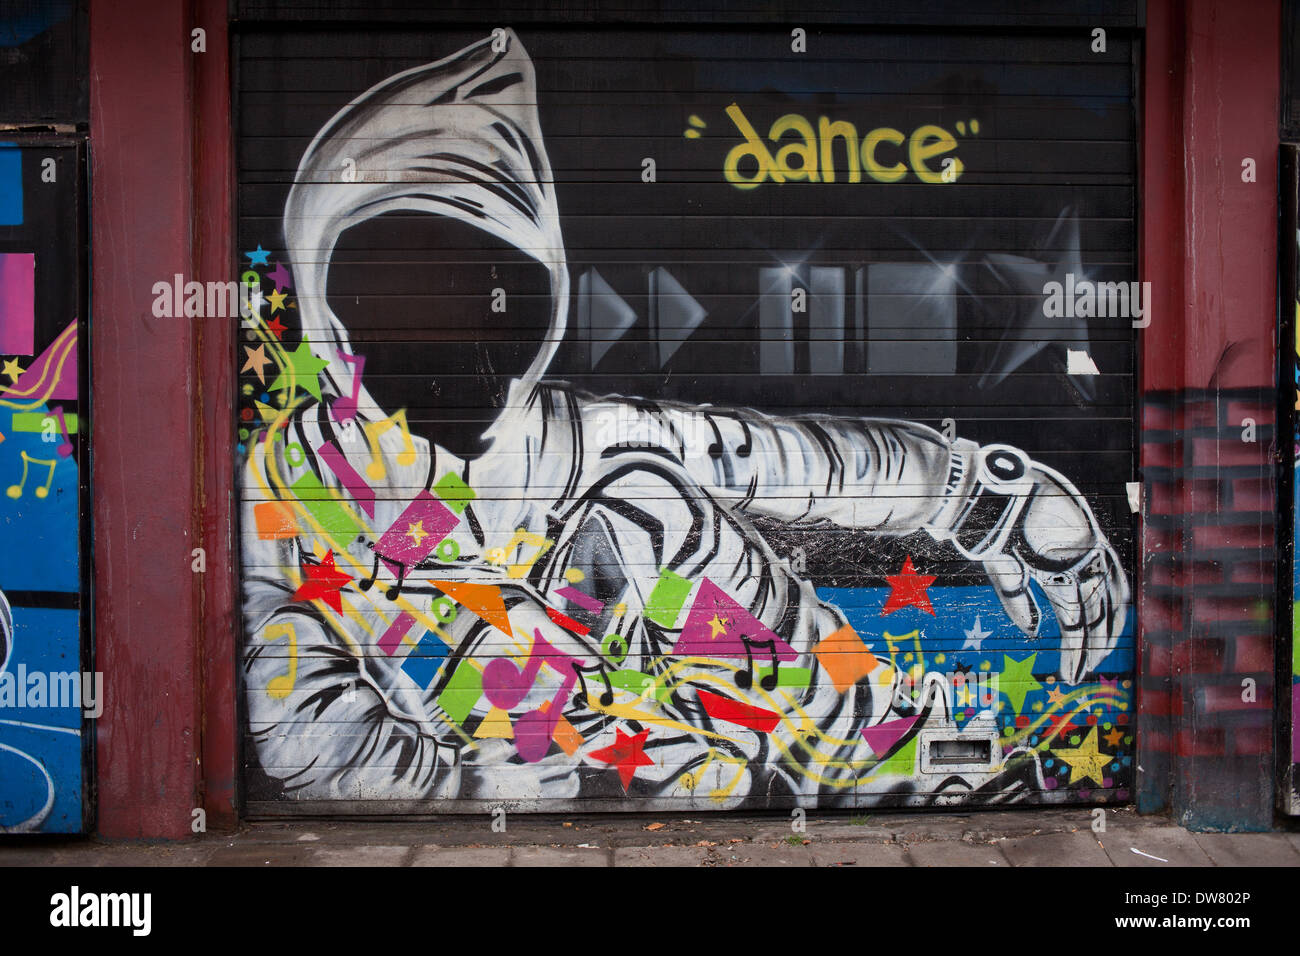 Mysterious Hooded Person With Dance And Music Theme